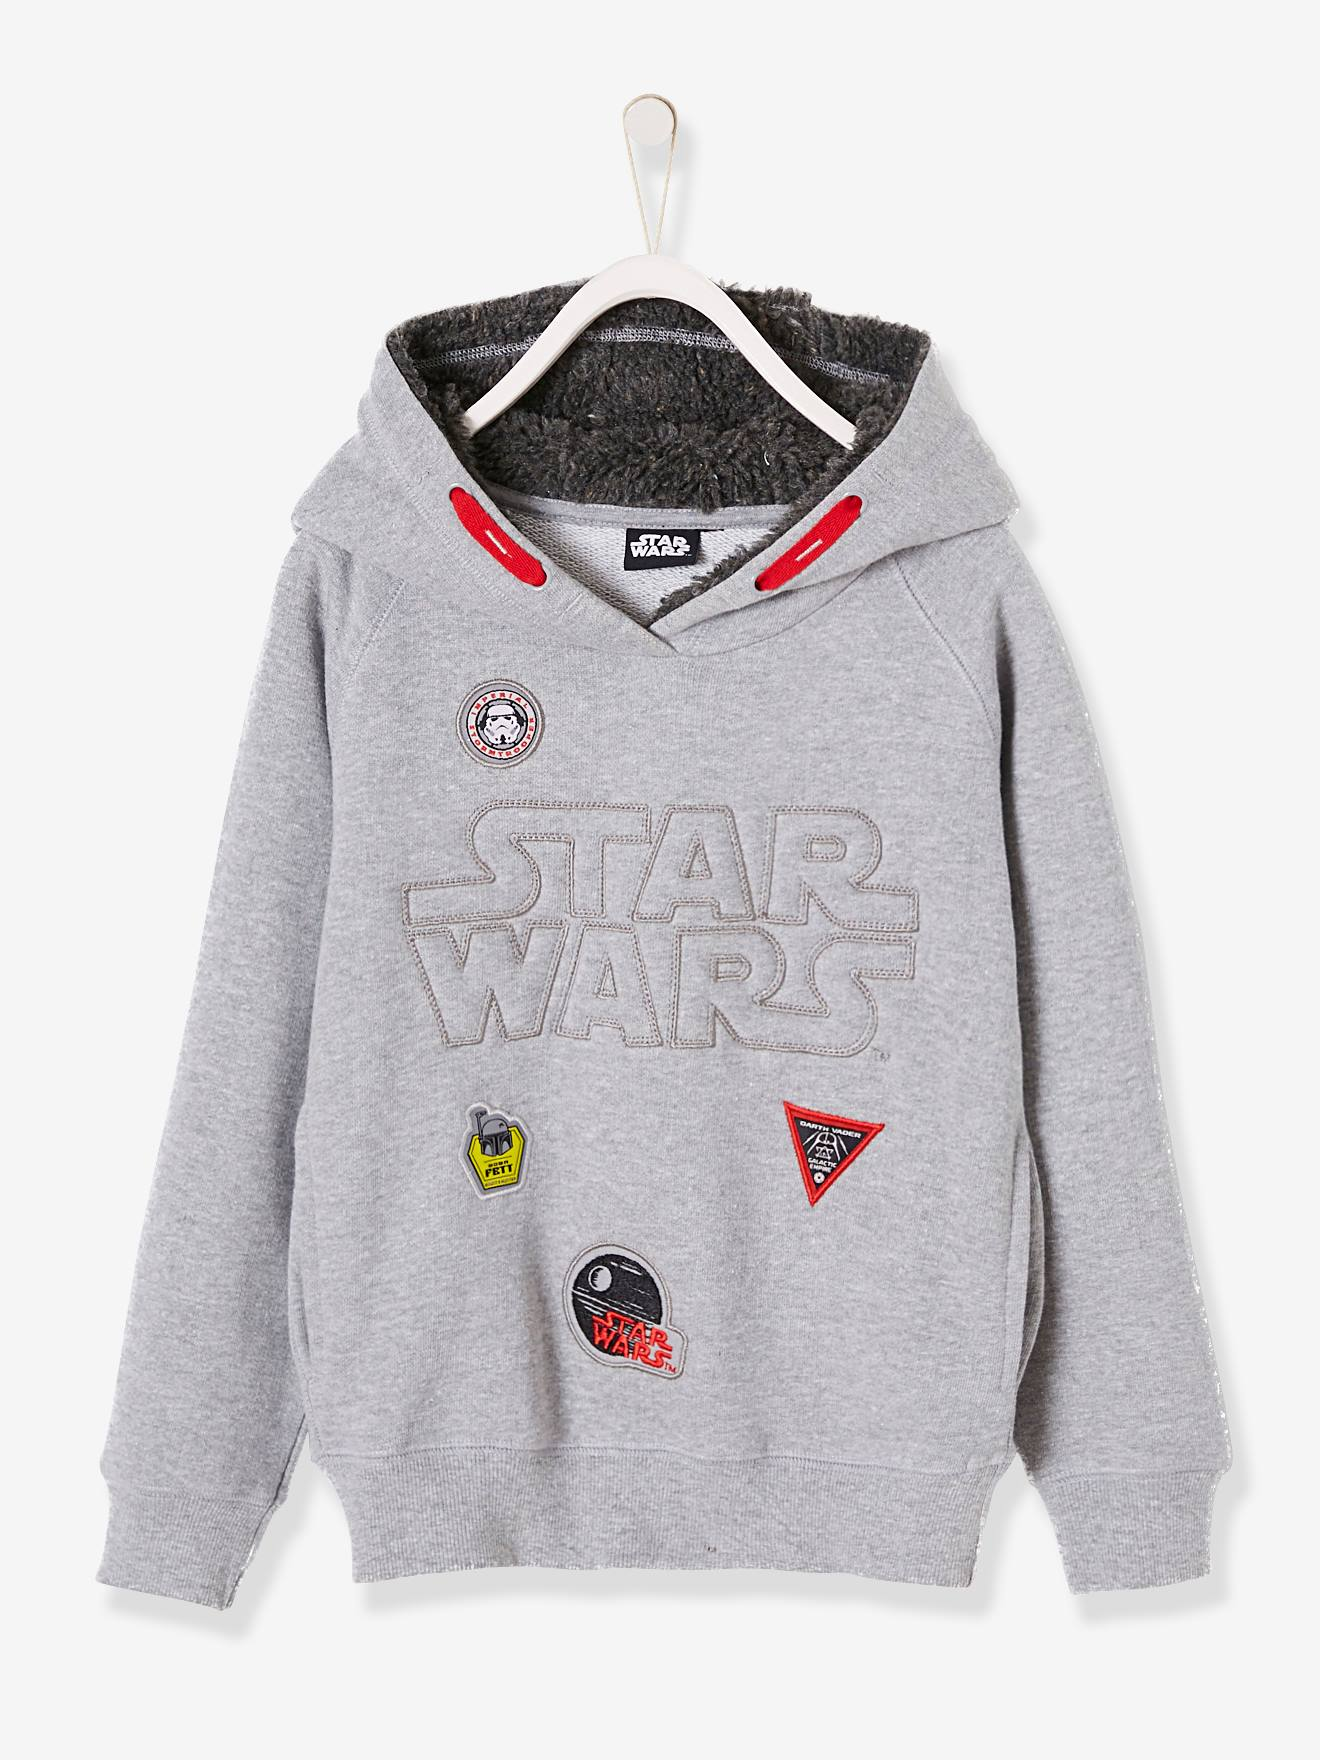 Sweat à capuche Star Wars® en molleton gris chine, Garçon